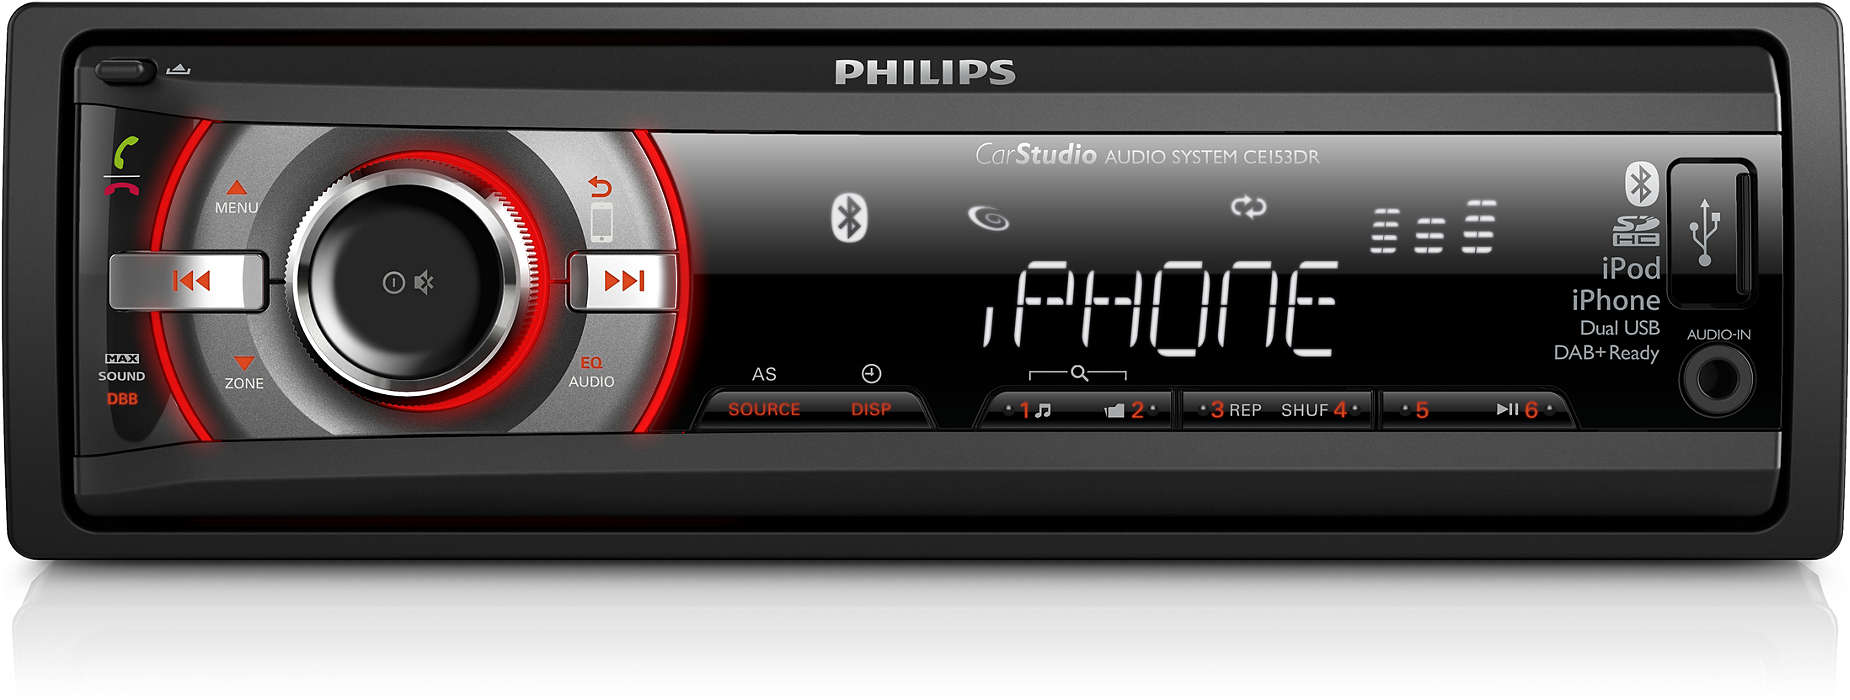 Car Audio System Ce153dr 05 Philips